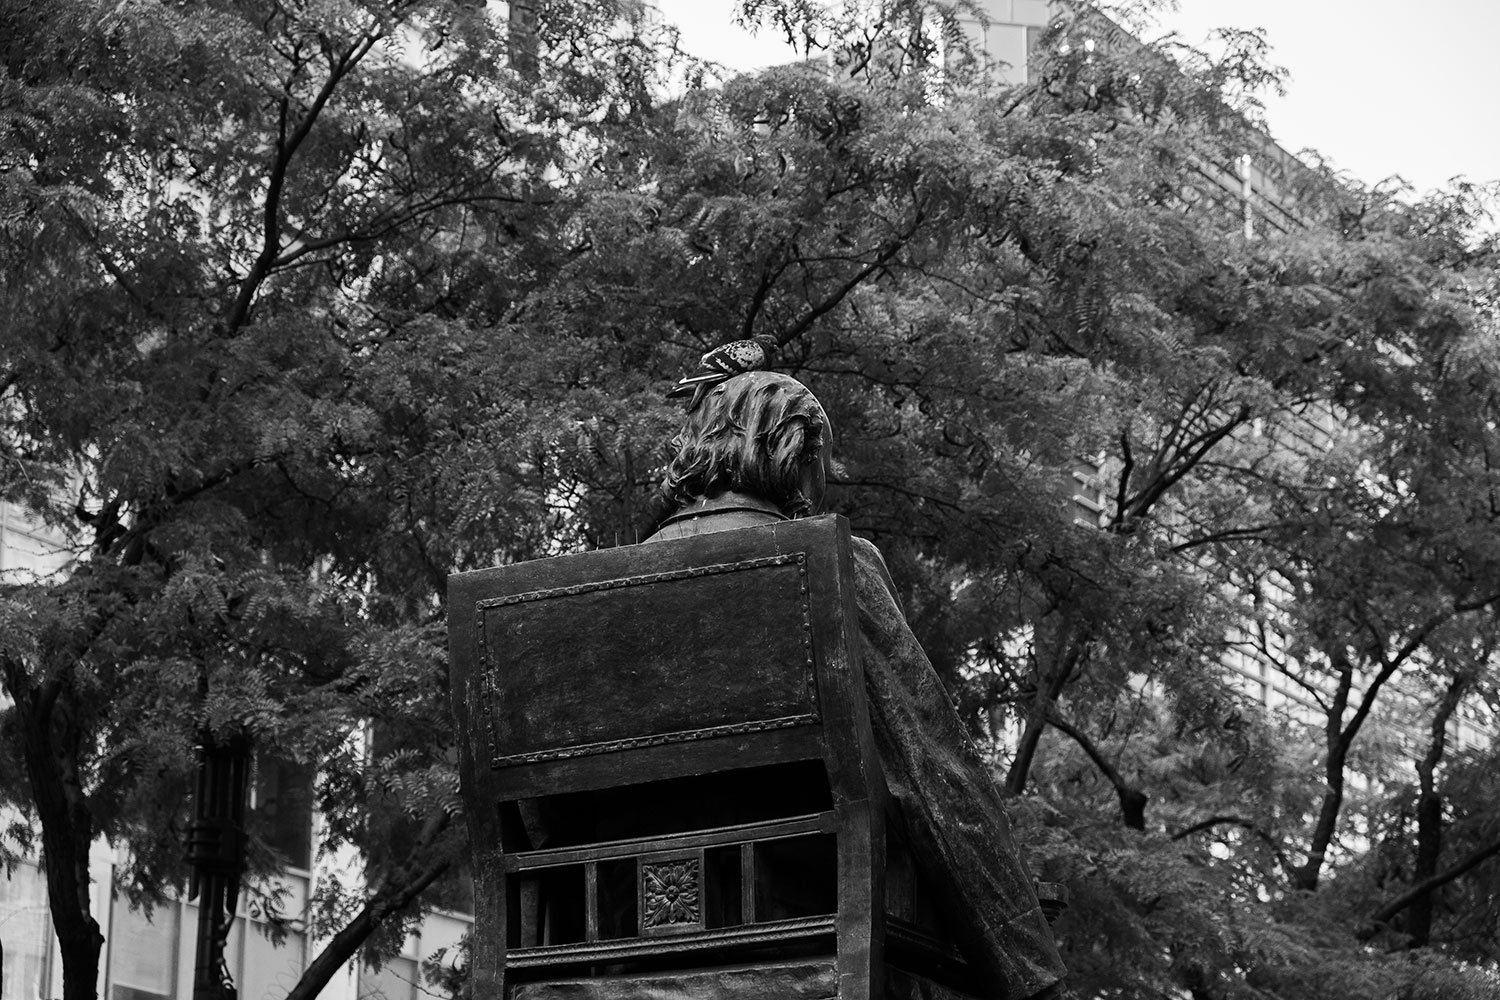 a pigeon sits on the head of a statue in NYC